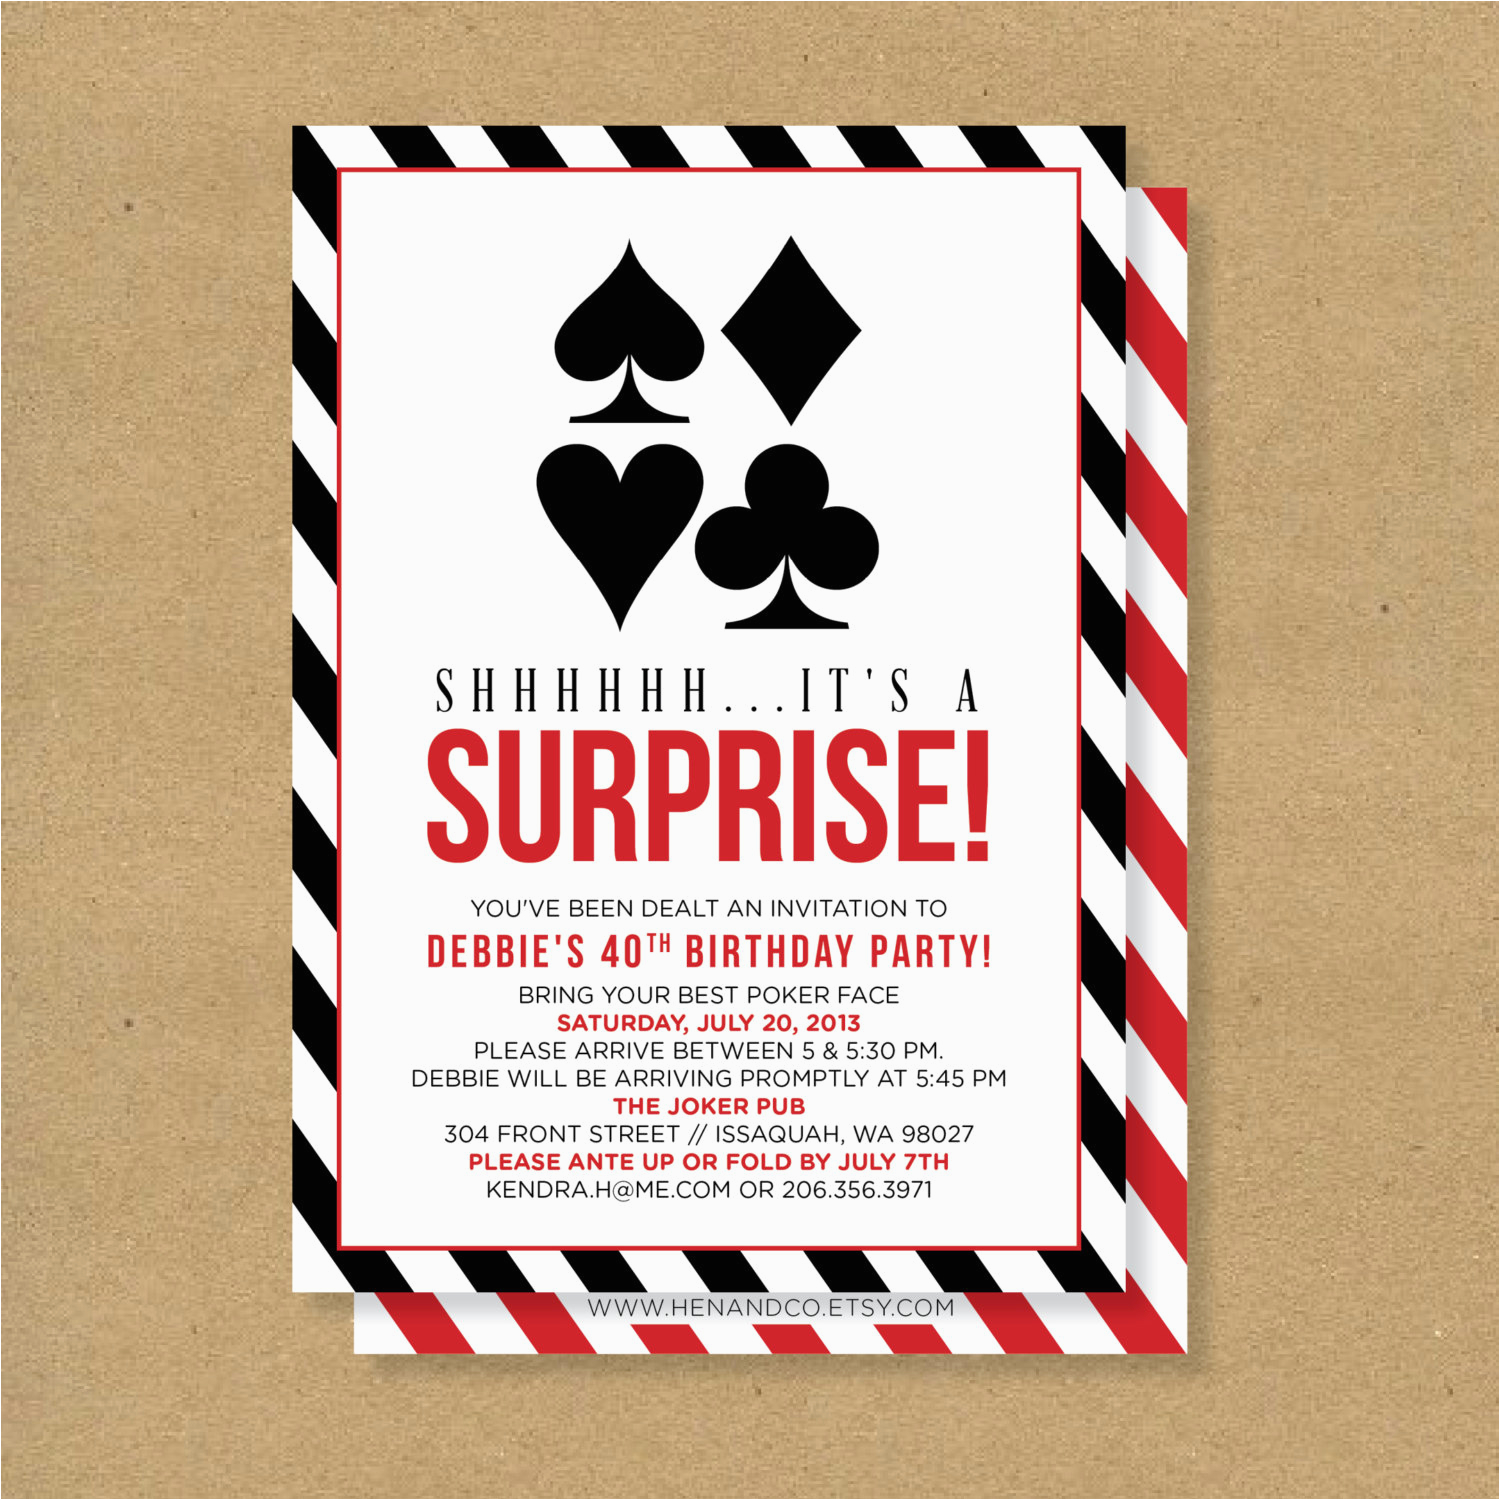 Poker Birthday Party Invitations Theme Surprise Printable Invitation